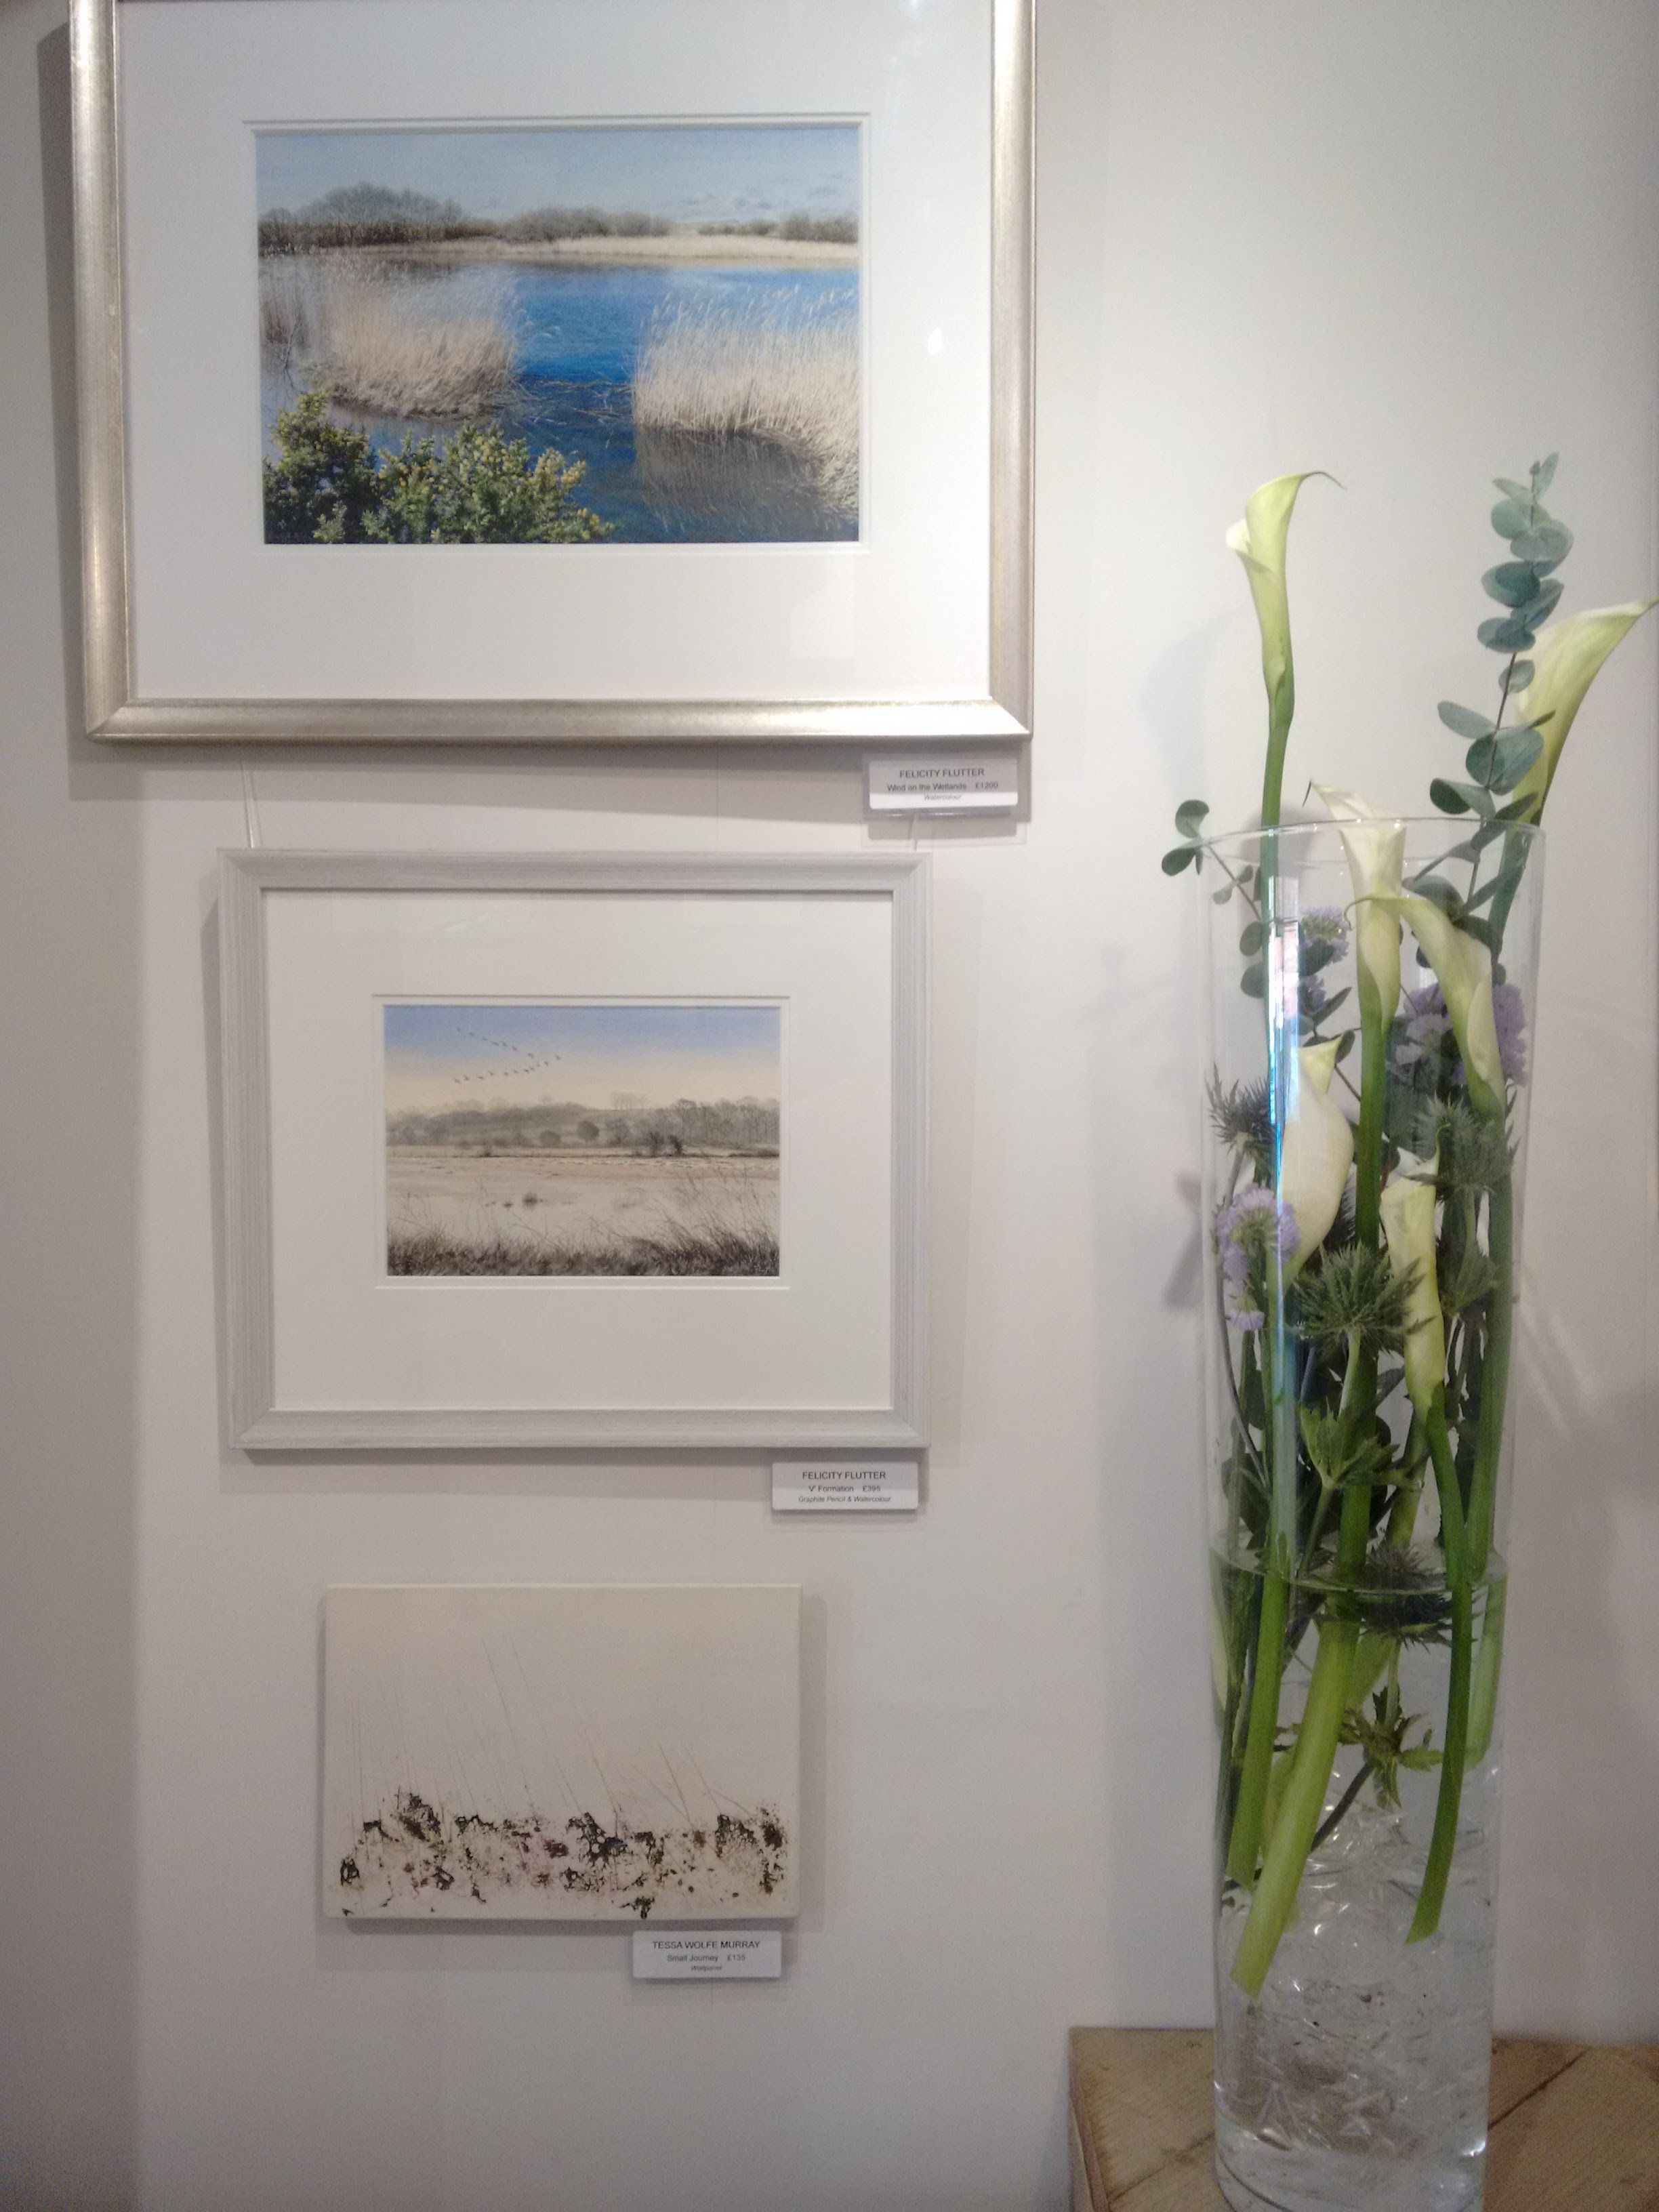 Even the florist is inspired by #TheMarshes The Art Bunch #Ticehurst with Felicity Flutter BA & Tessa Wolfe Murray